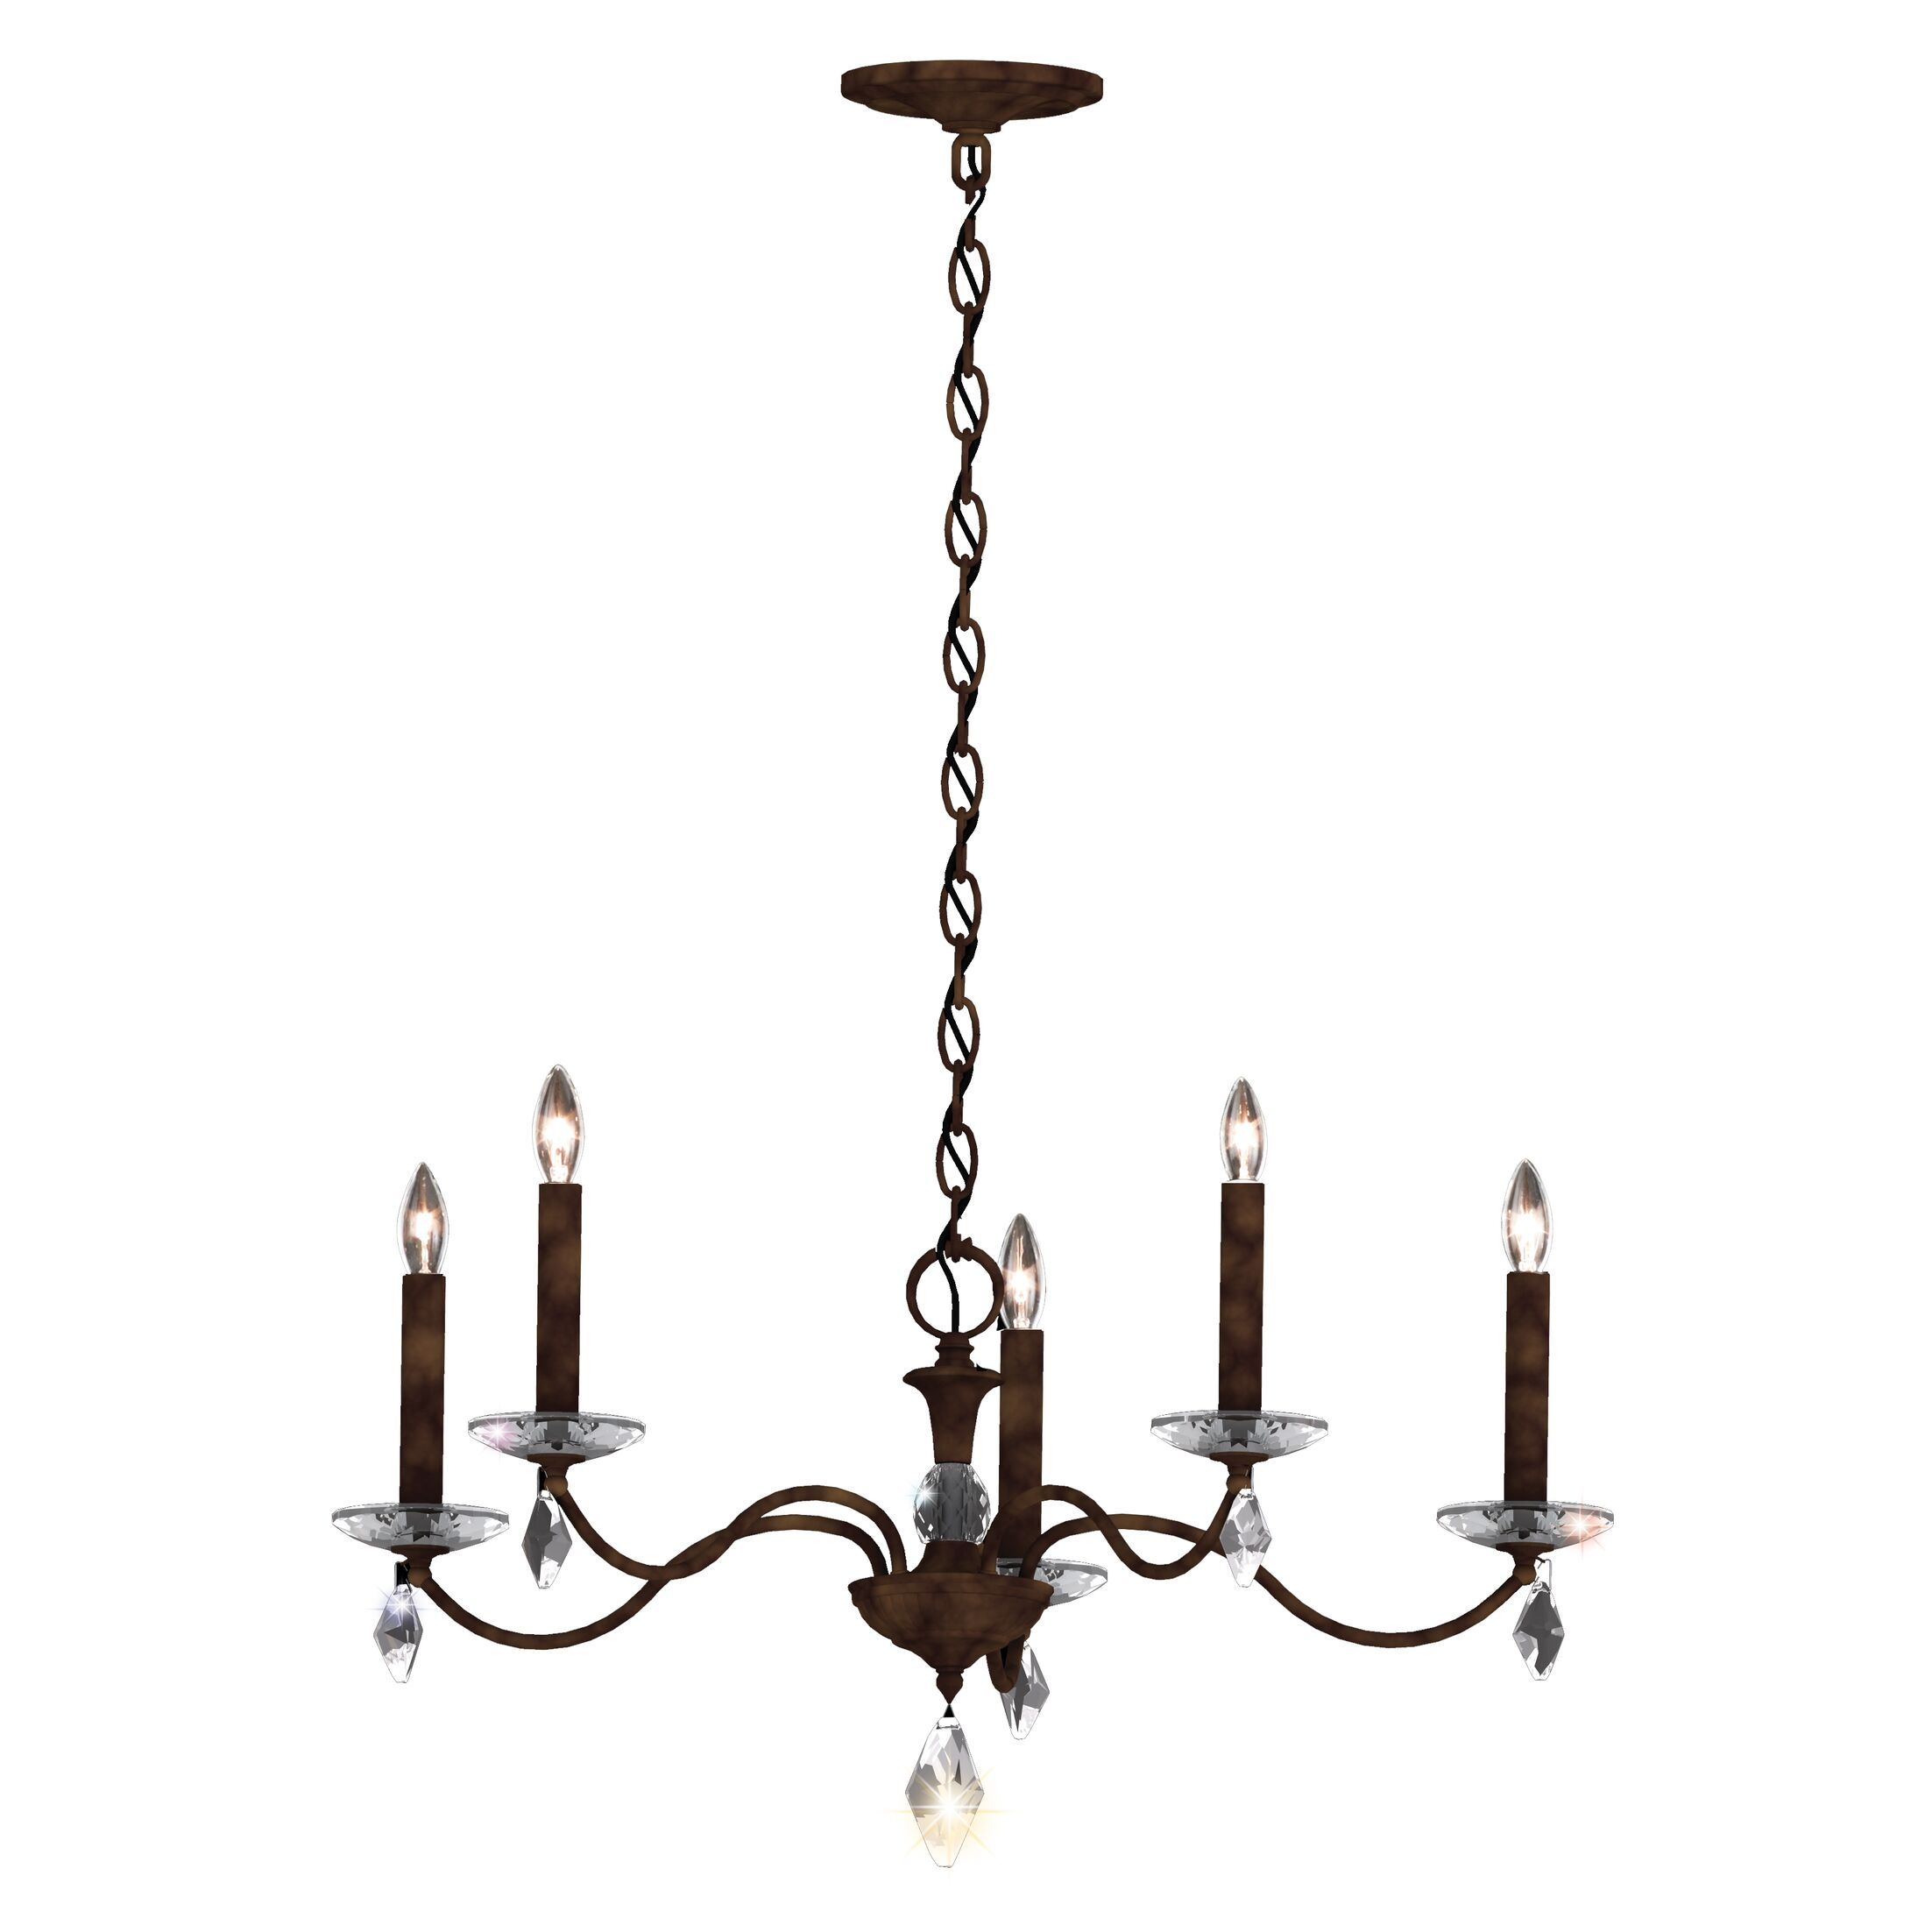 Modique 5-Light Chandelier Crystal Grade: Heritage, Finish: French Gold